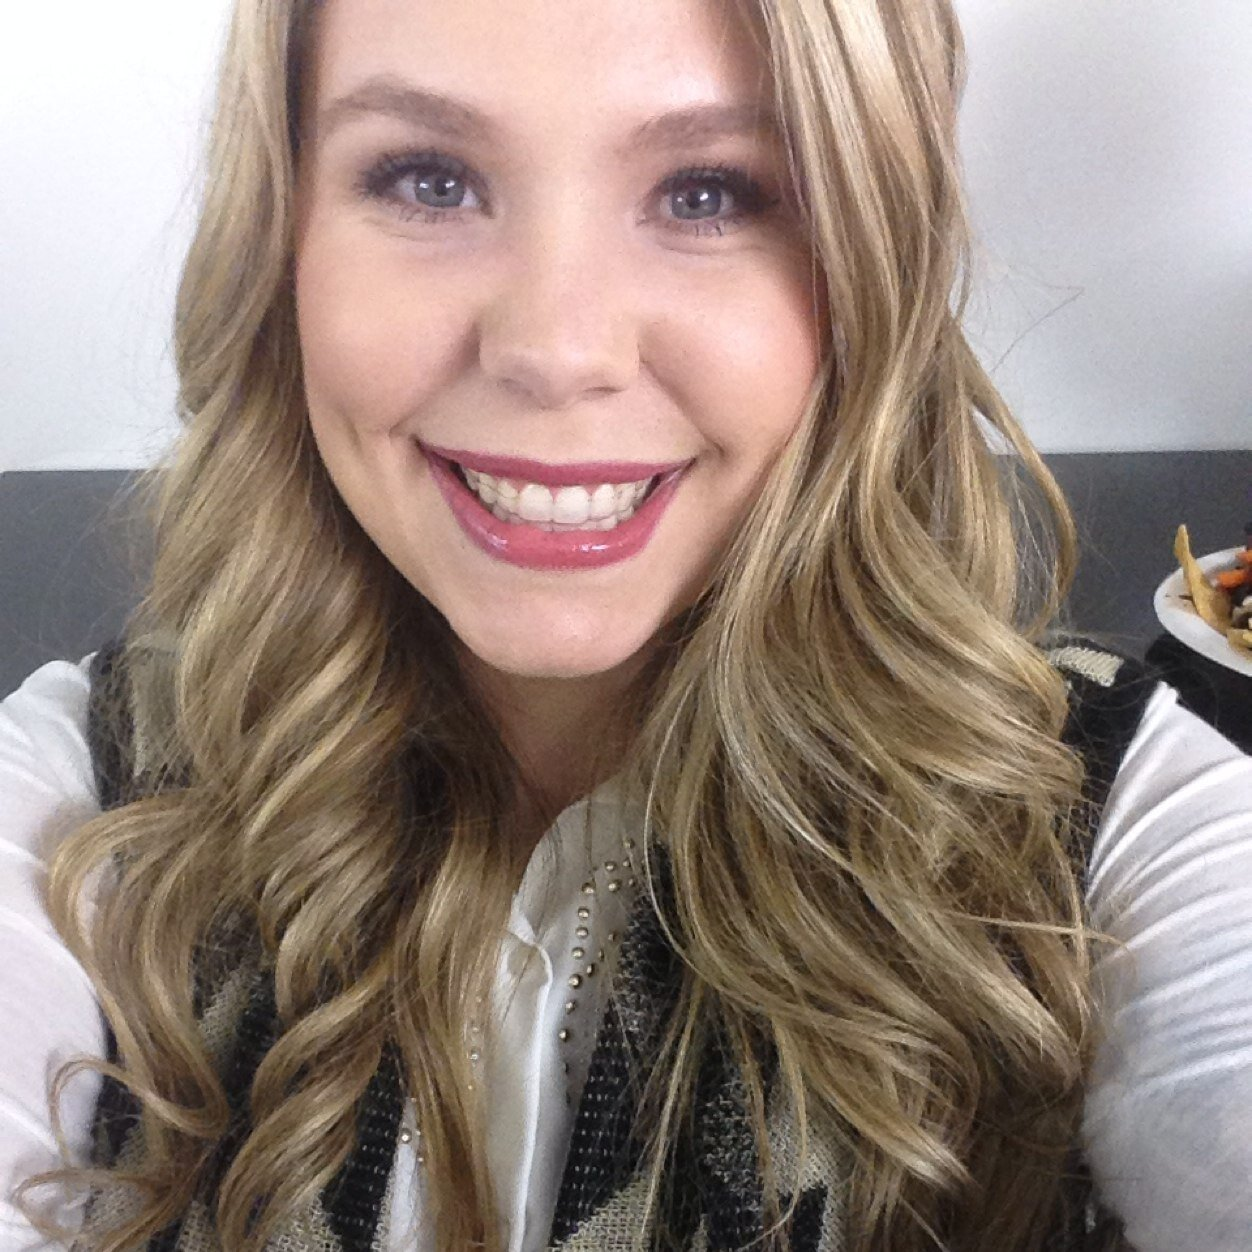 Teen Mom 2 Star Kailyn Lowry Loses Some Weight